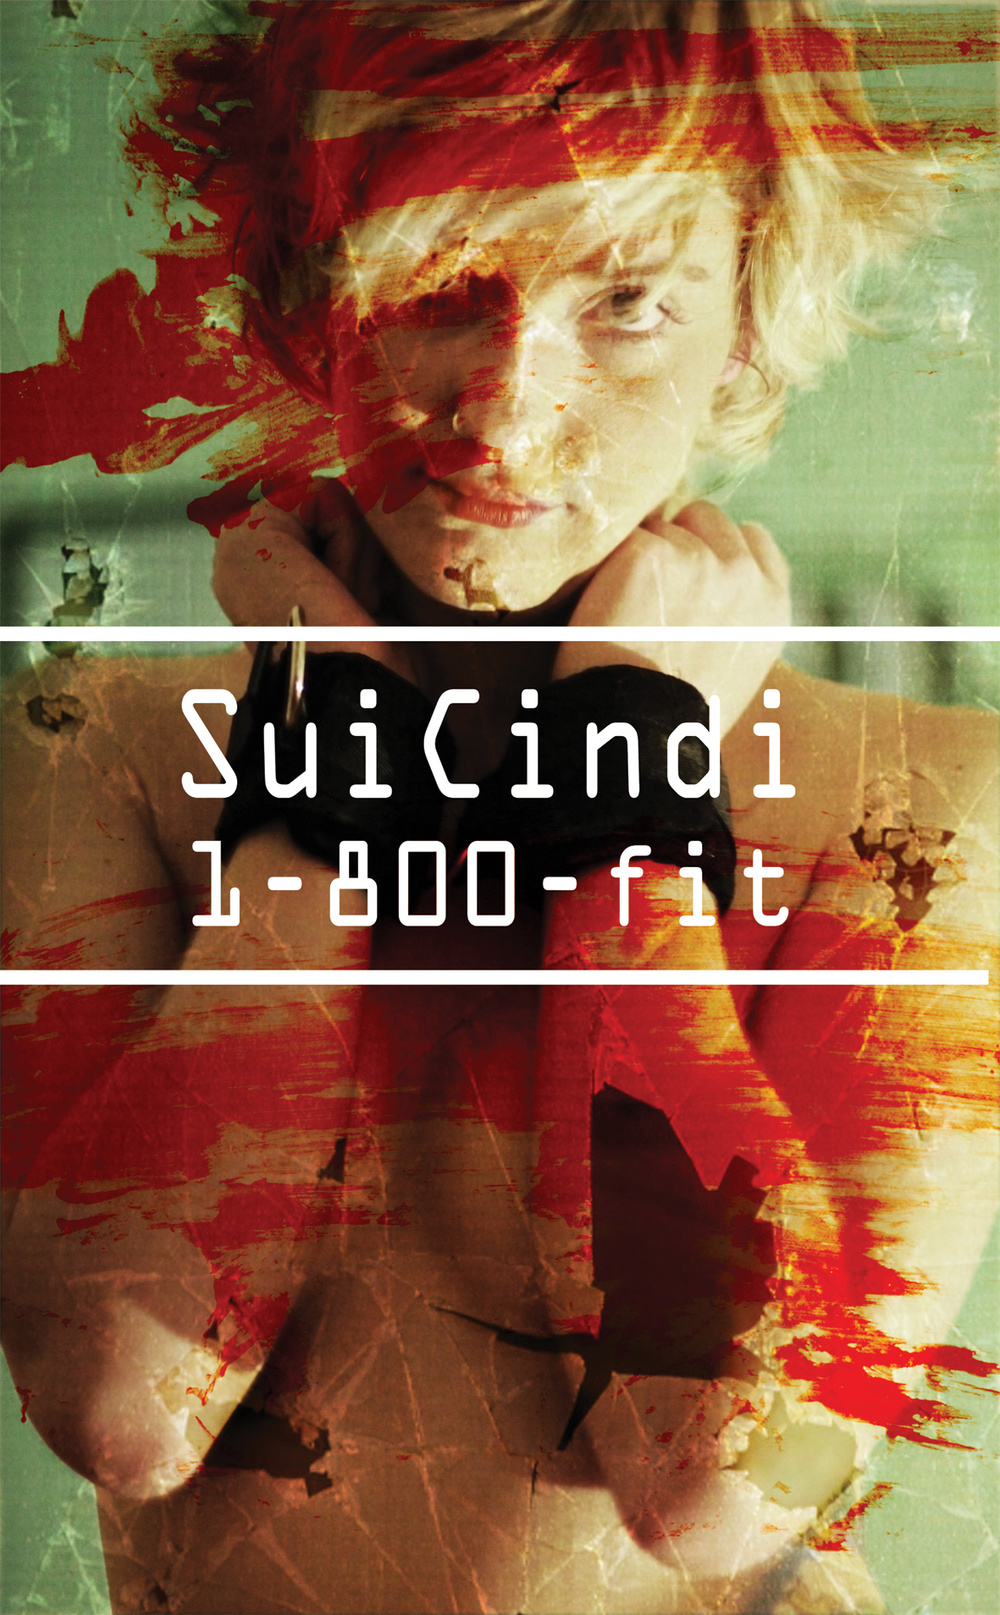 Oct 2012. Photography and design by Ulysses Black. Model: SindiSucide [http://suicidegirls.com/members/Sindi/]